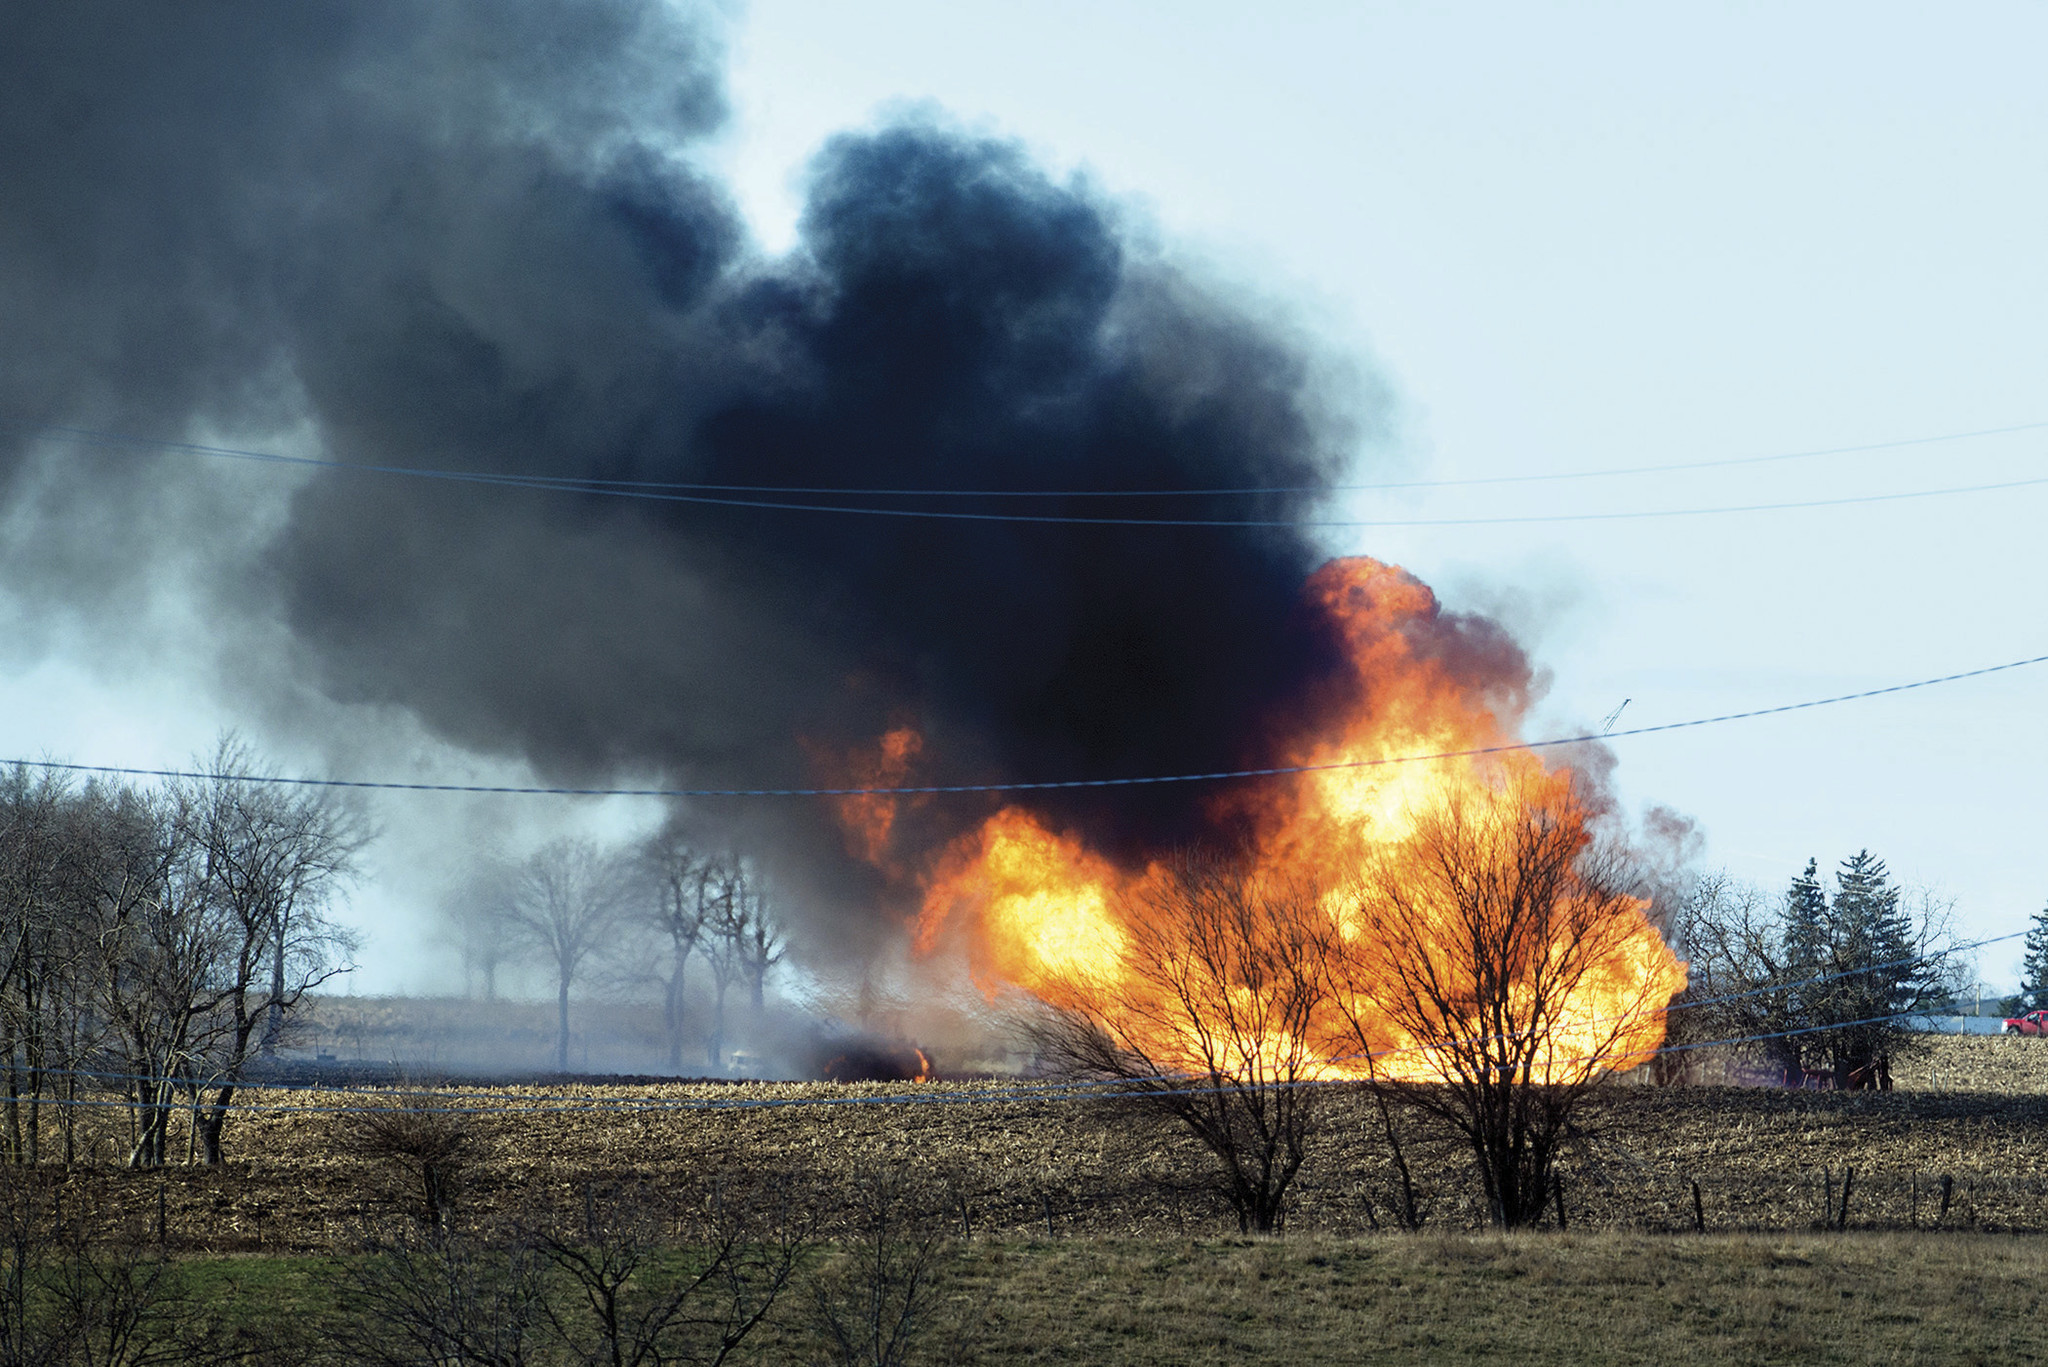 Report Human Error Caused Pipeline Explosion That Killed